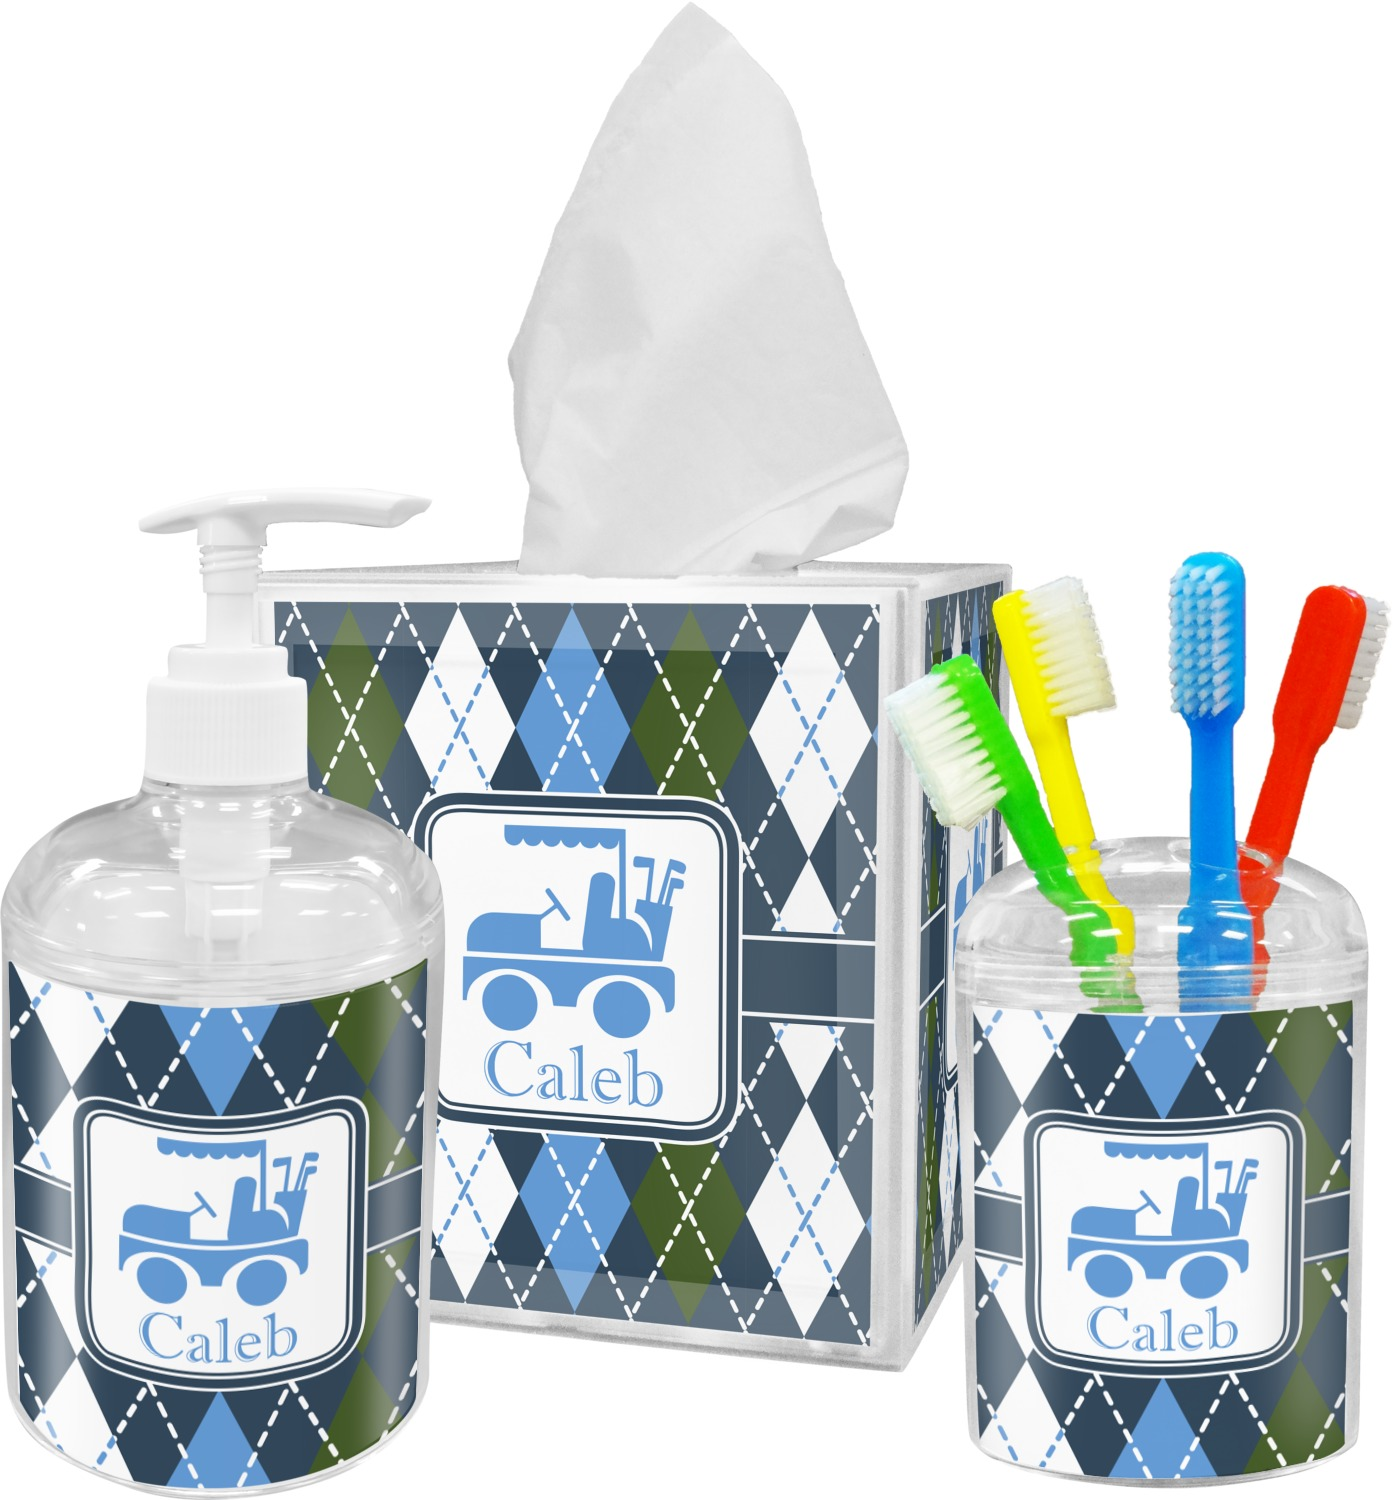 Blue argyle bathroom accessories set personalized - Monogrammed bathroom accessories ...